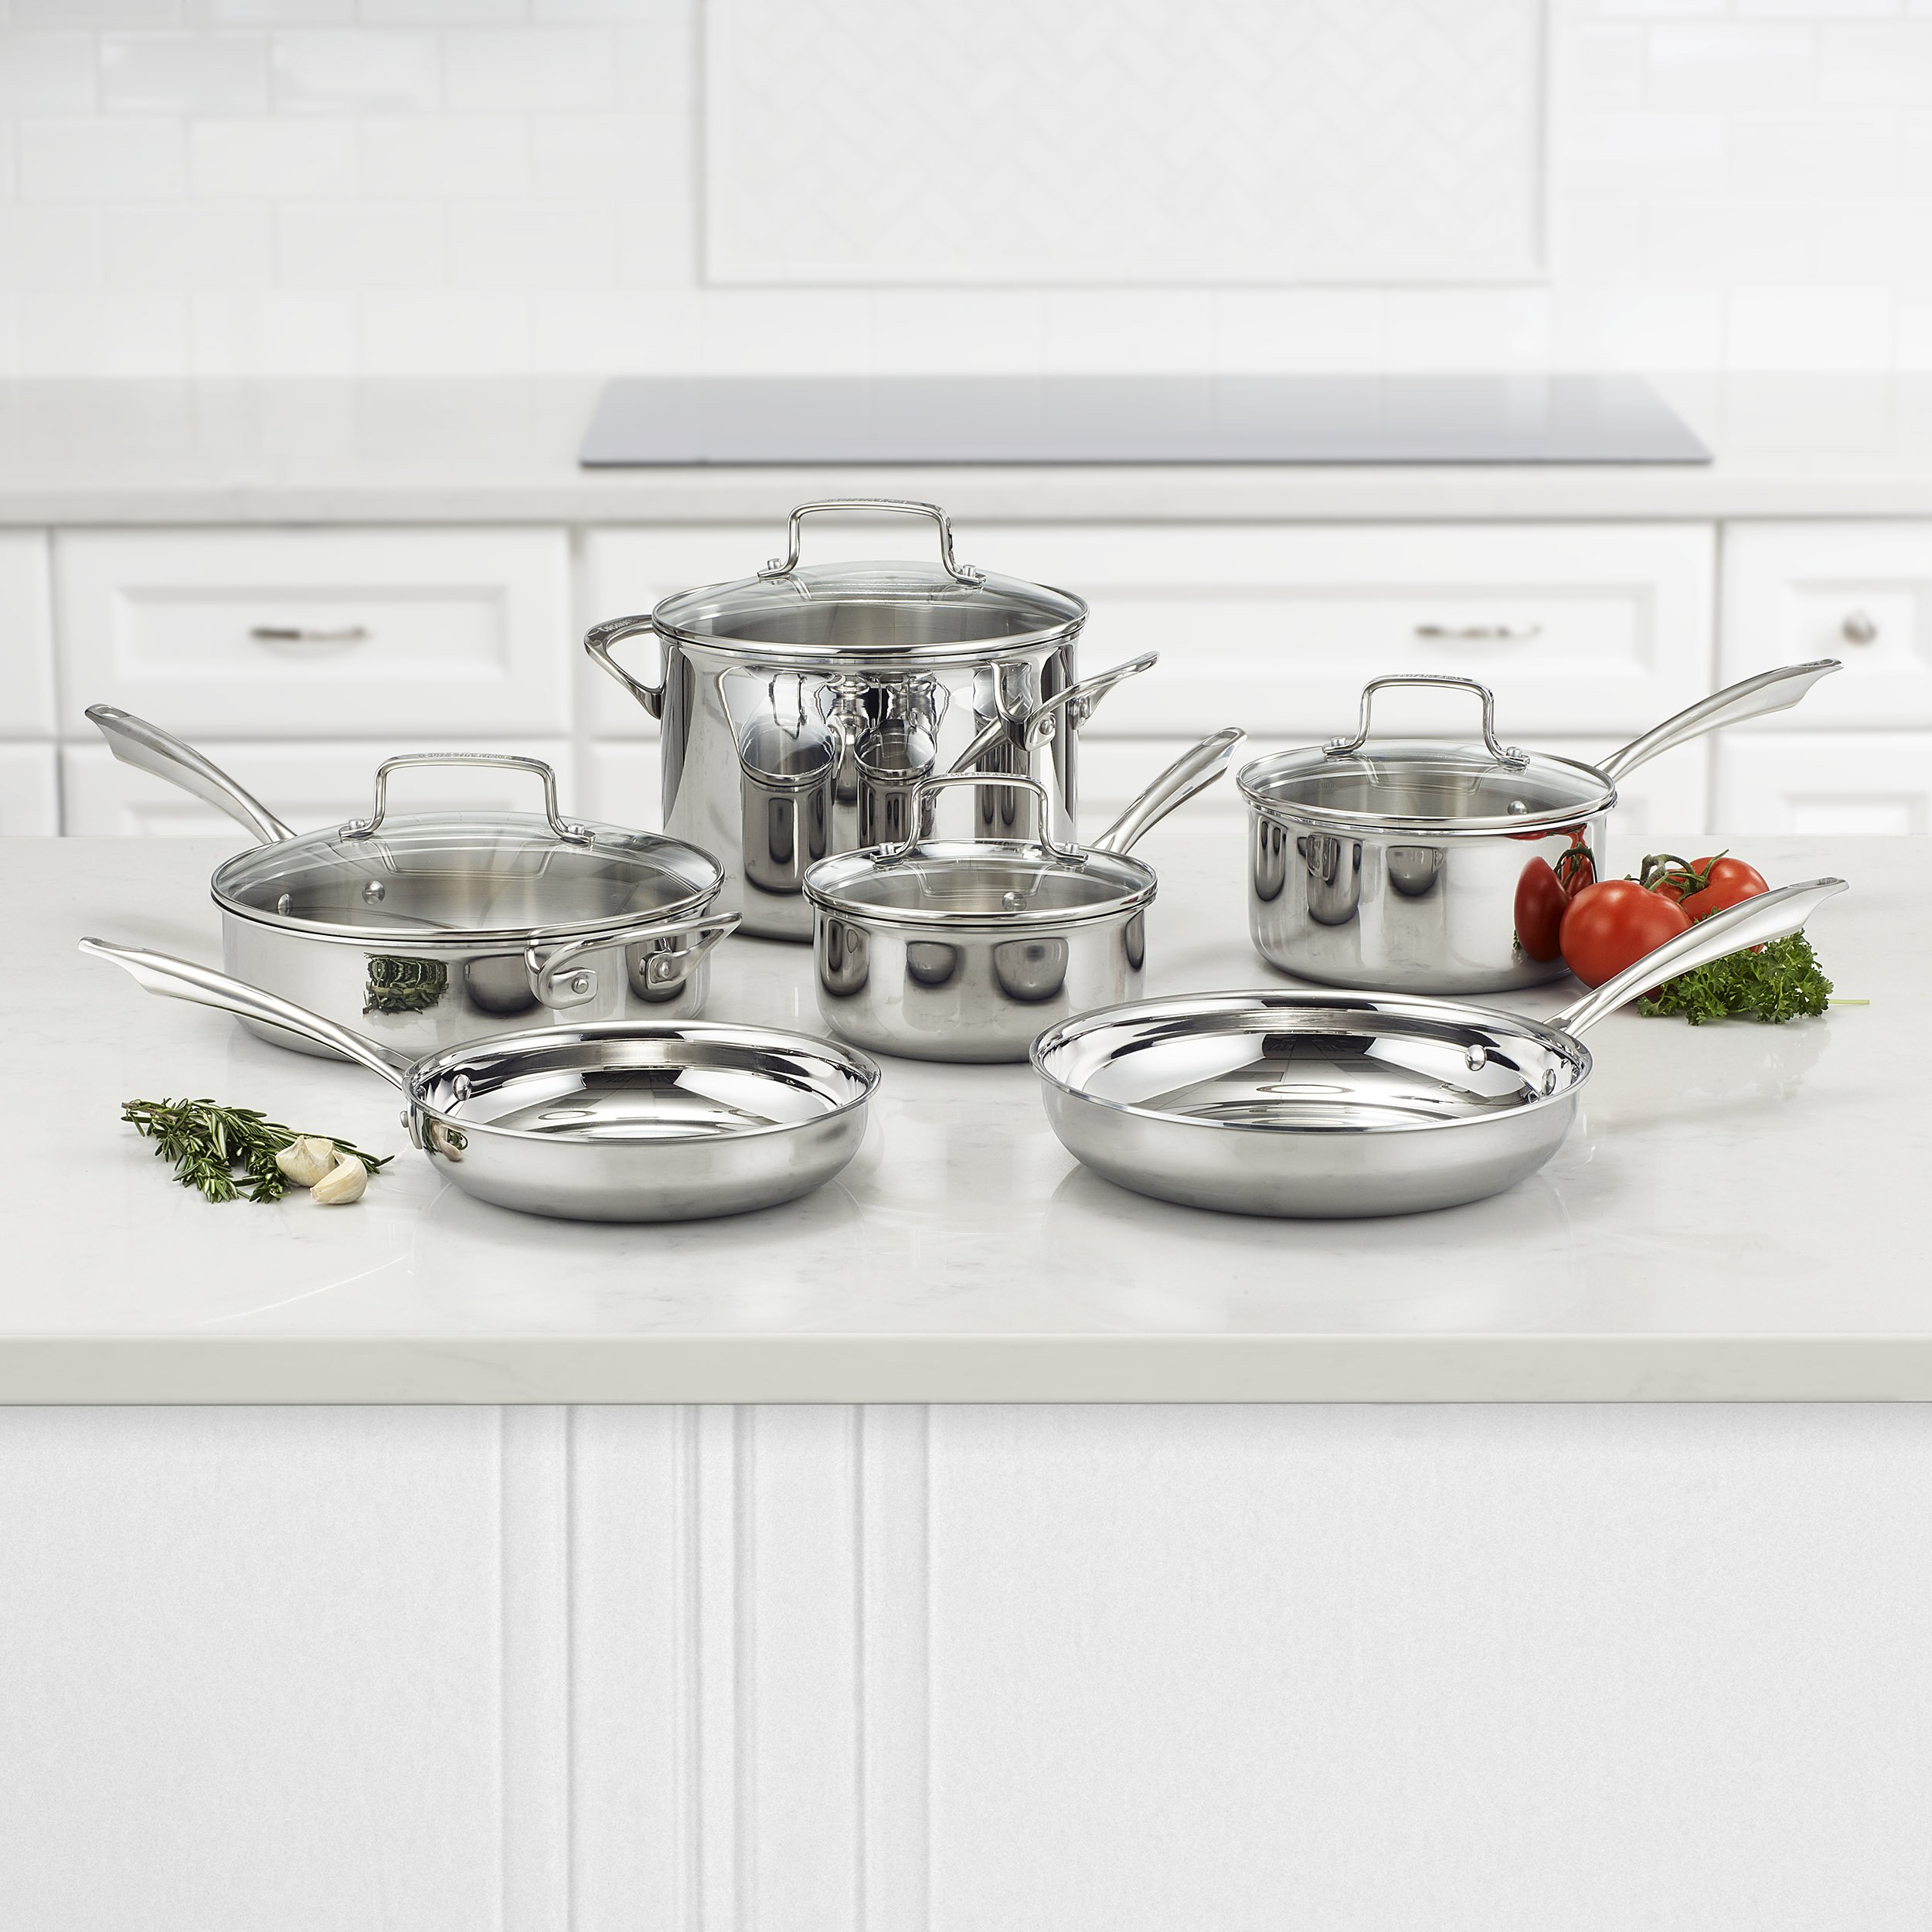 Cuisinart TPS-10 10 Piece Tri-ply Stainless Steel Cookware Set, PC, Silver by Cuisinart (Image #2)